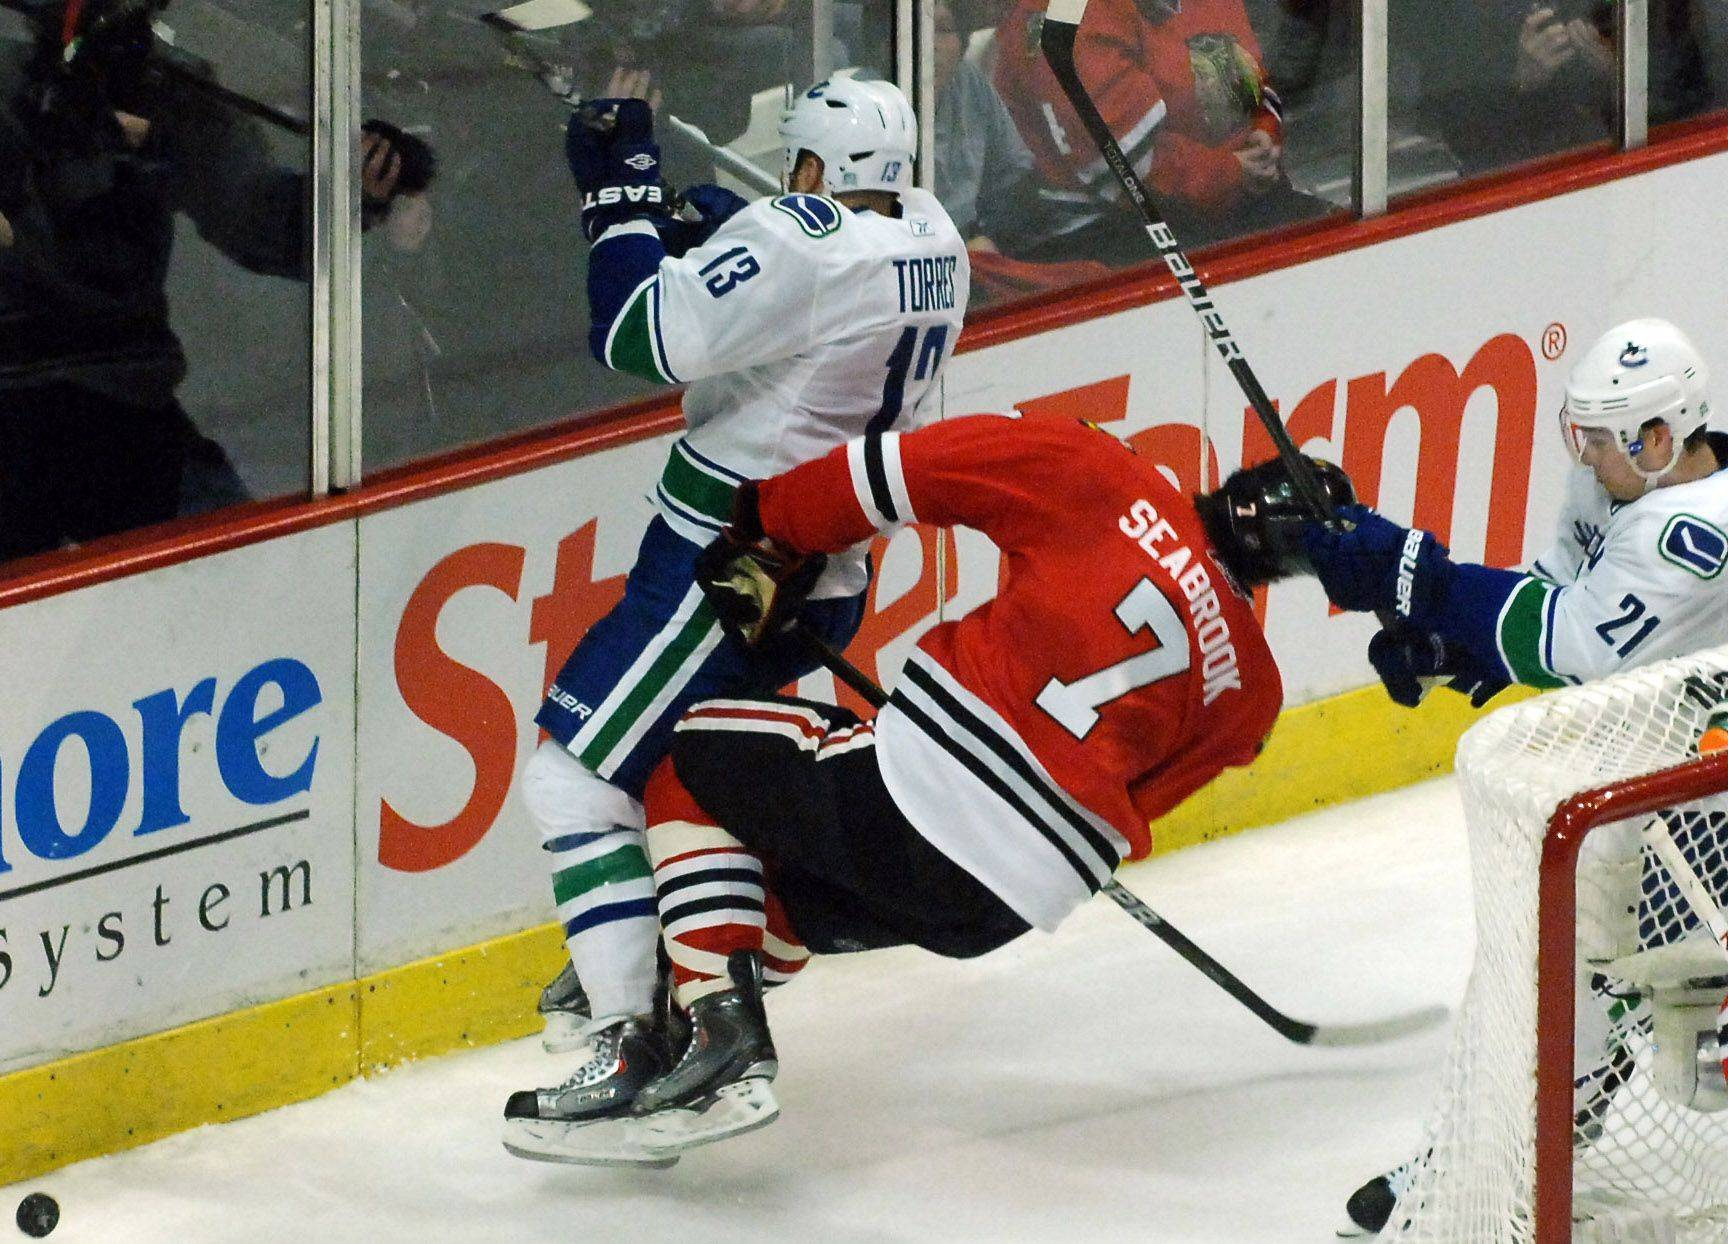 Hawks take another hit: Seabrook out tonight